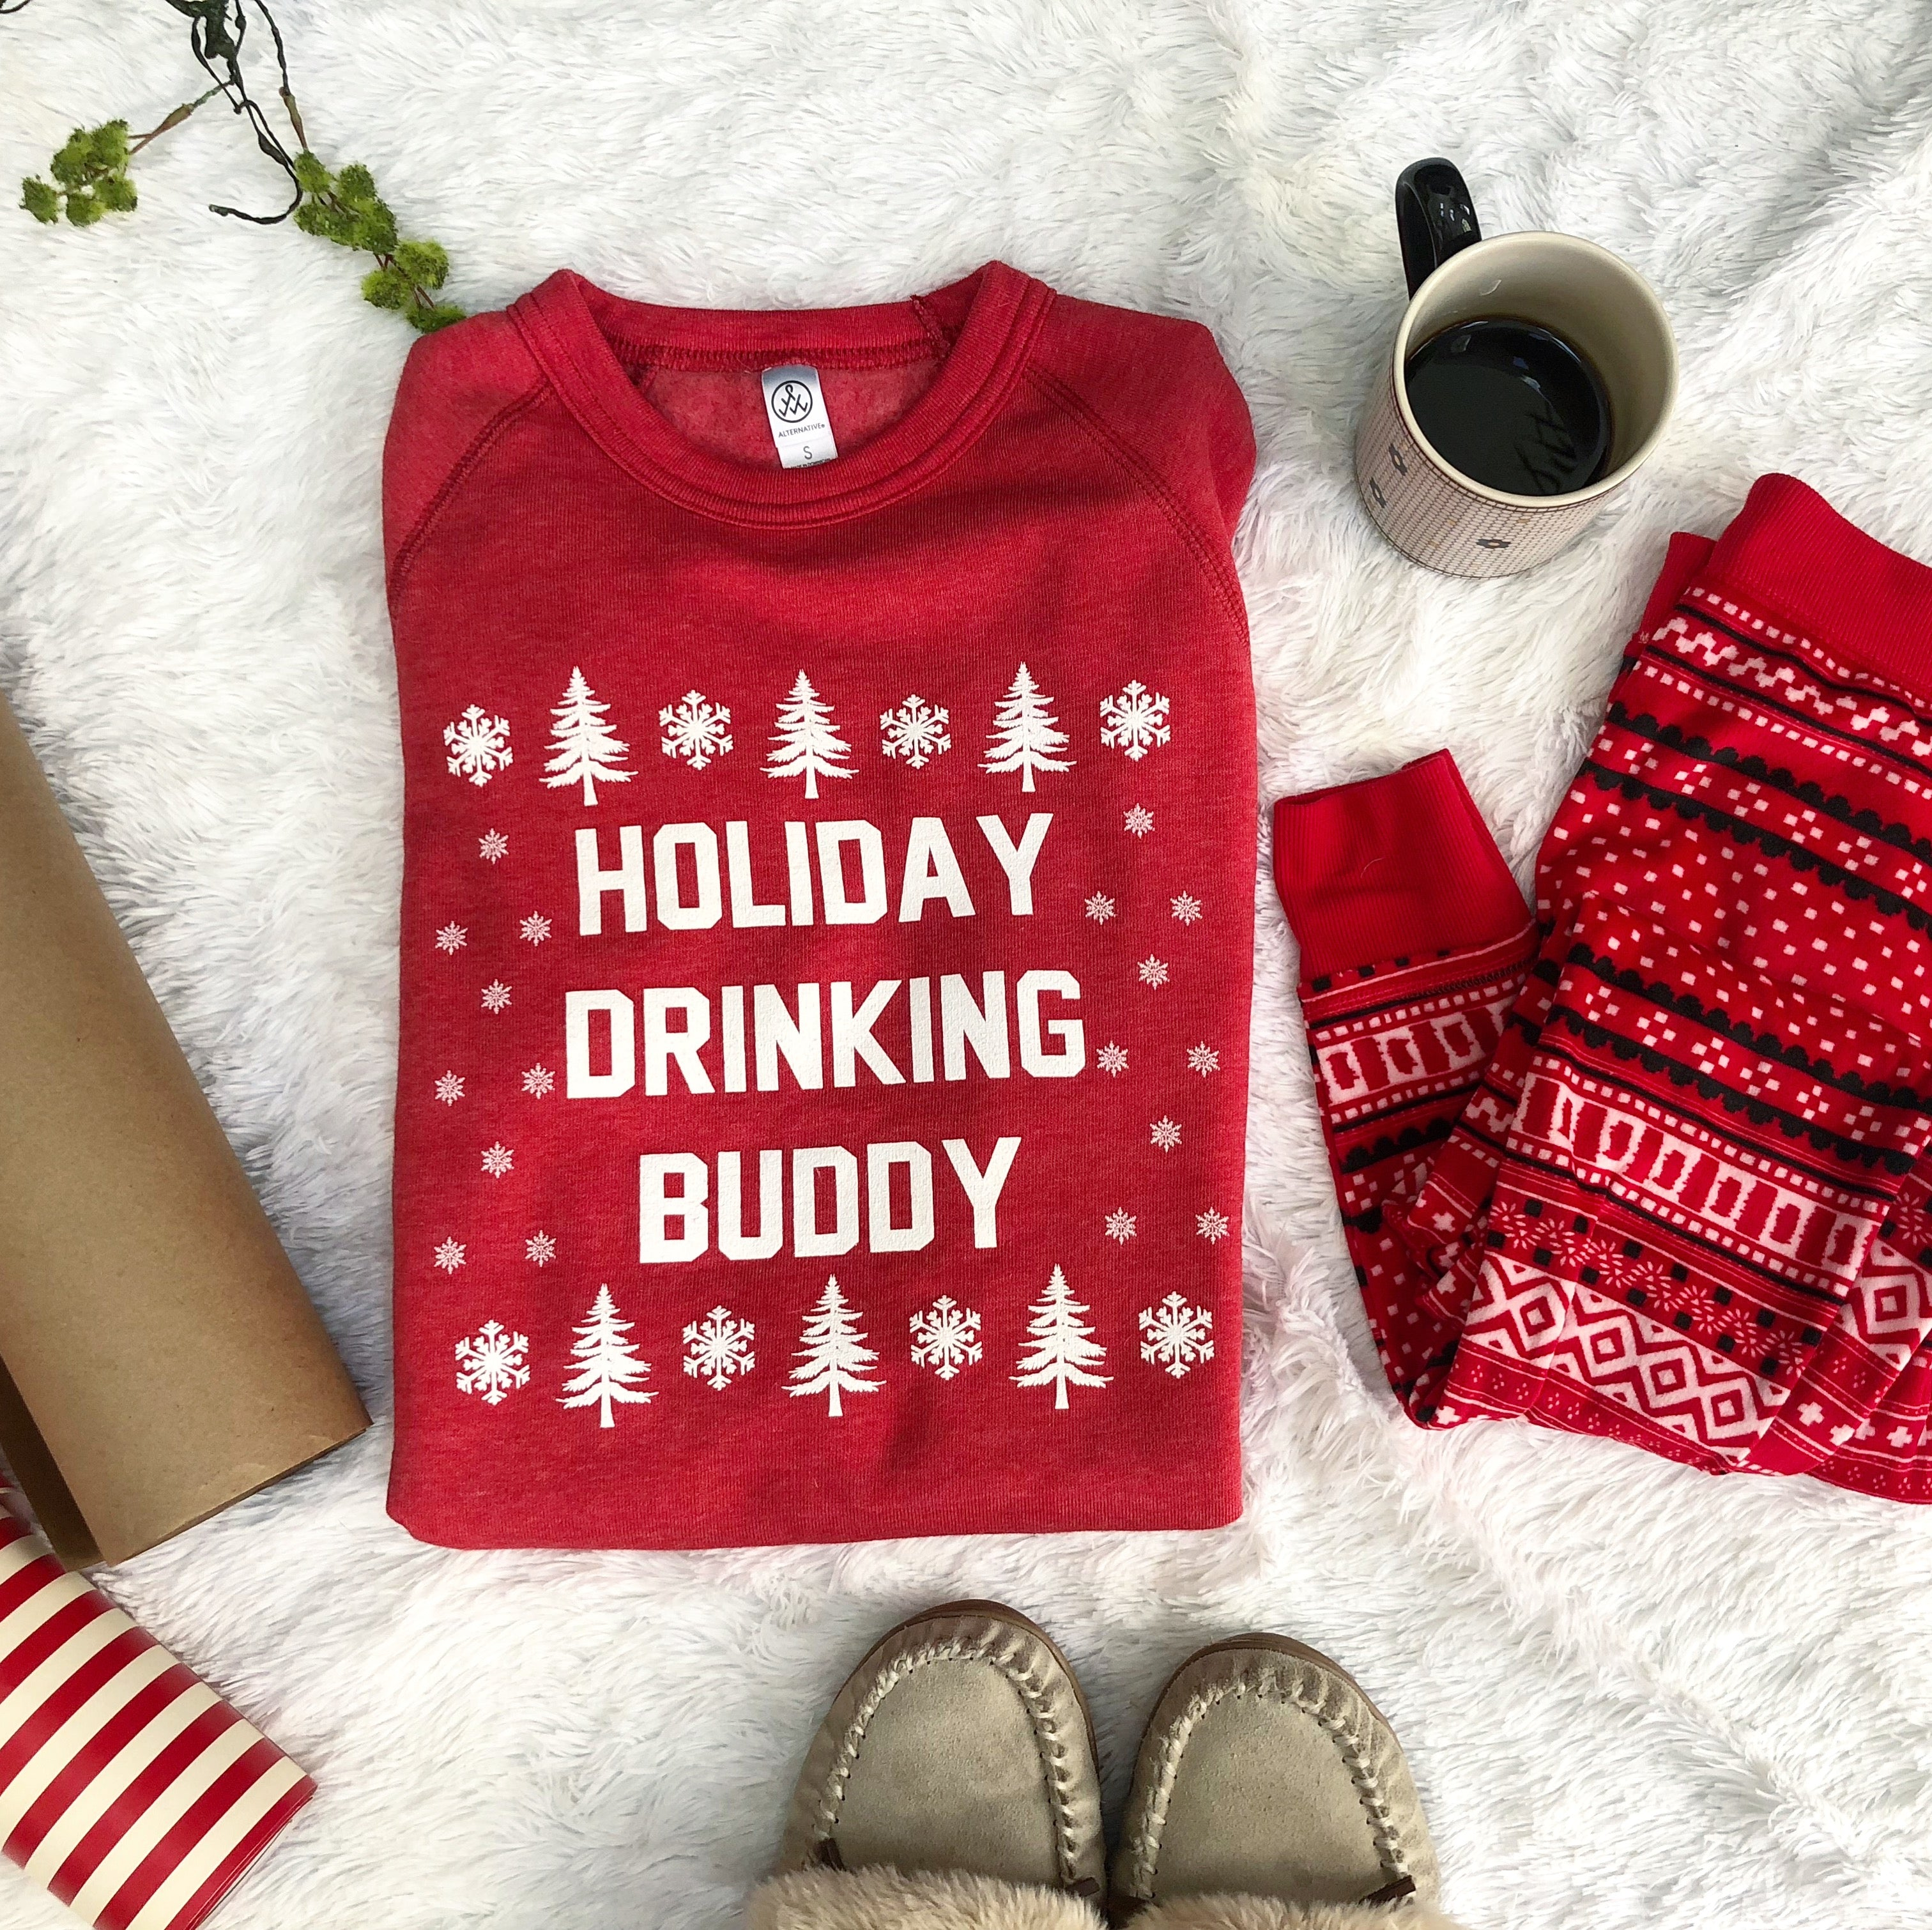 Holiday Drinking Buddy sweatshirt